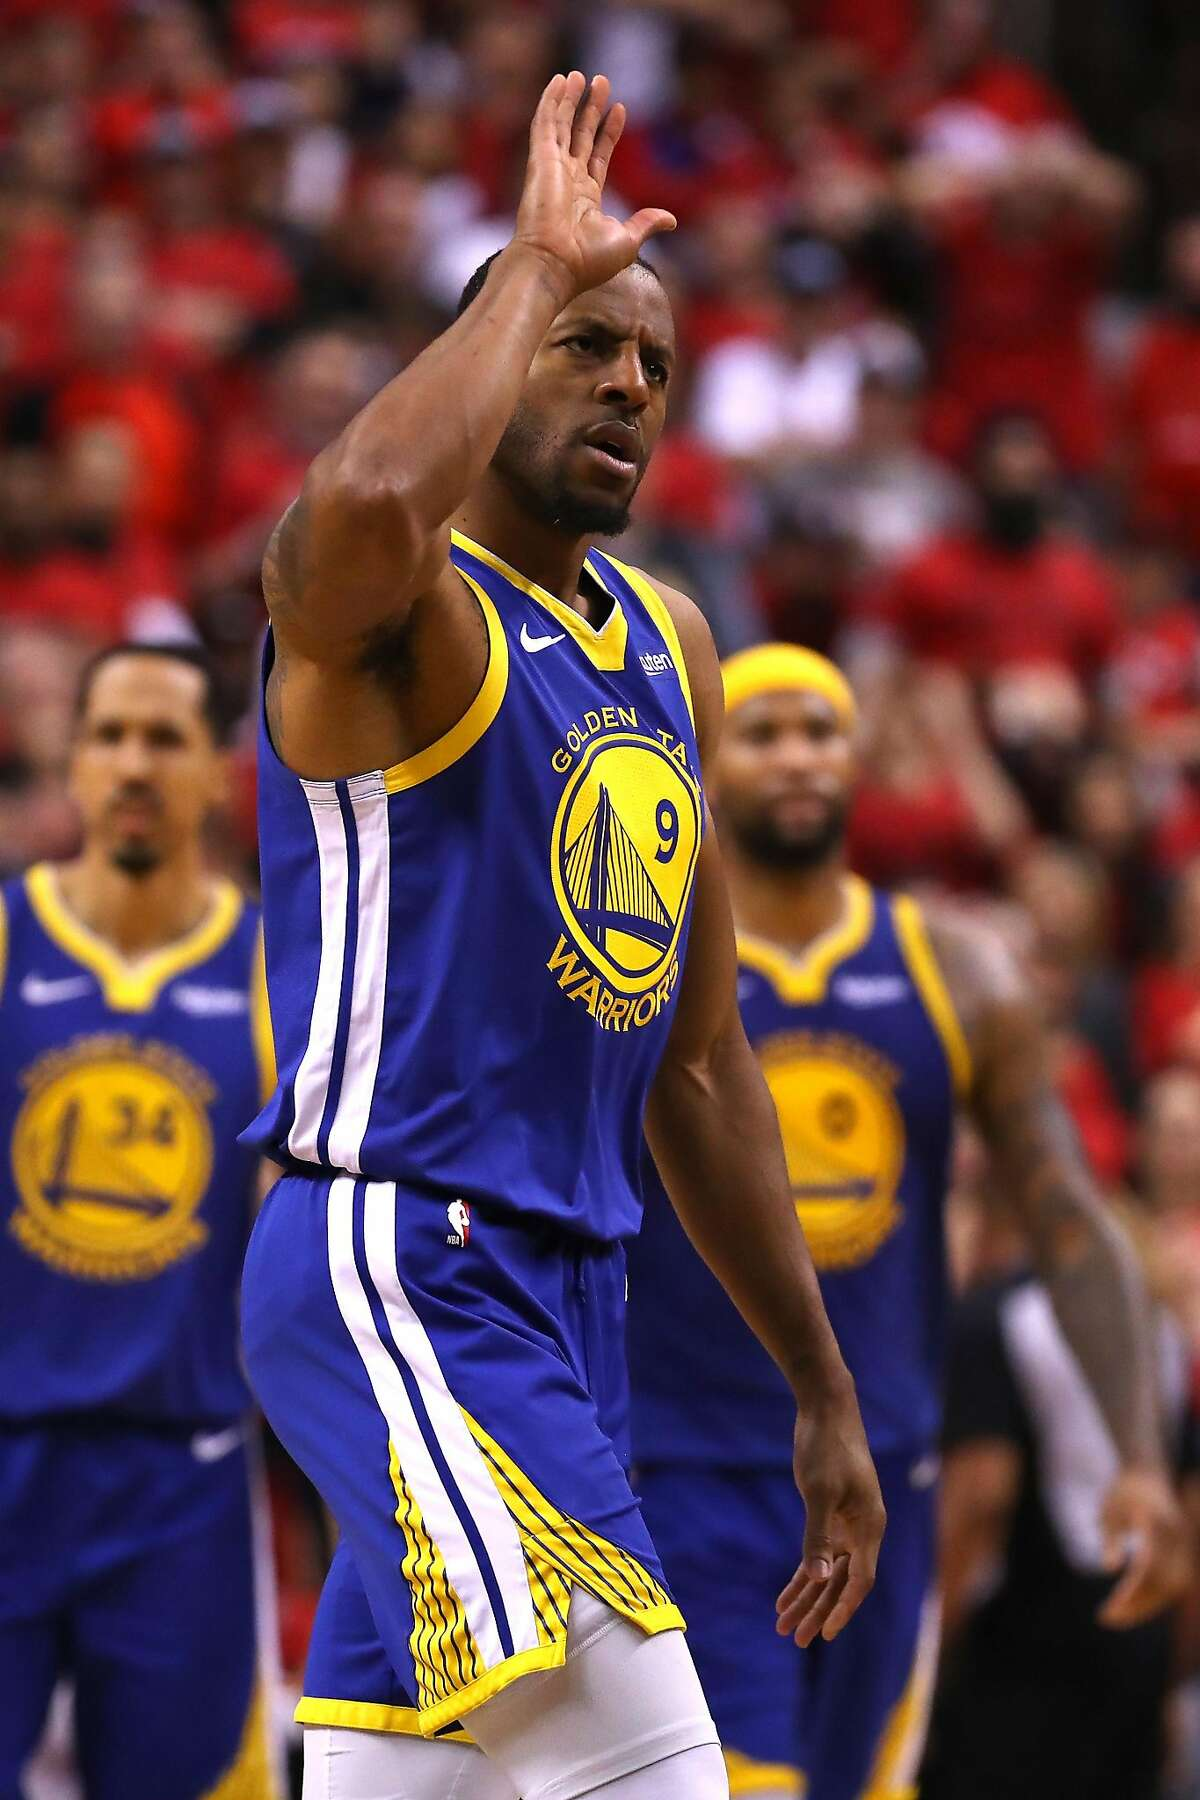 Andre Iguodala of the Golden State Warriors celebrates a basket late in the game against the Toronto Raptors during Game 2 of the 2019 NBA Finals at Scotiabank Arena on June 2, 2019 in Toronto, Canada.